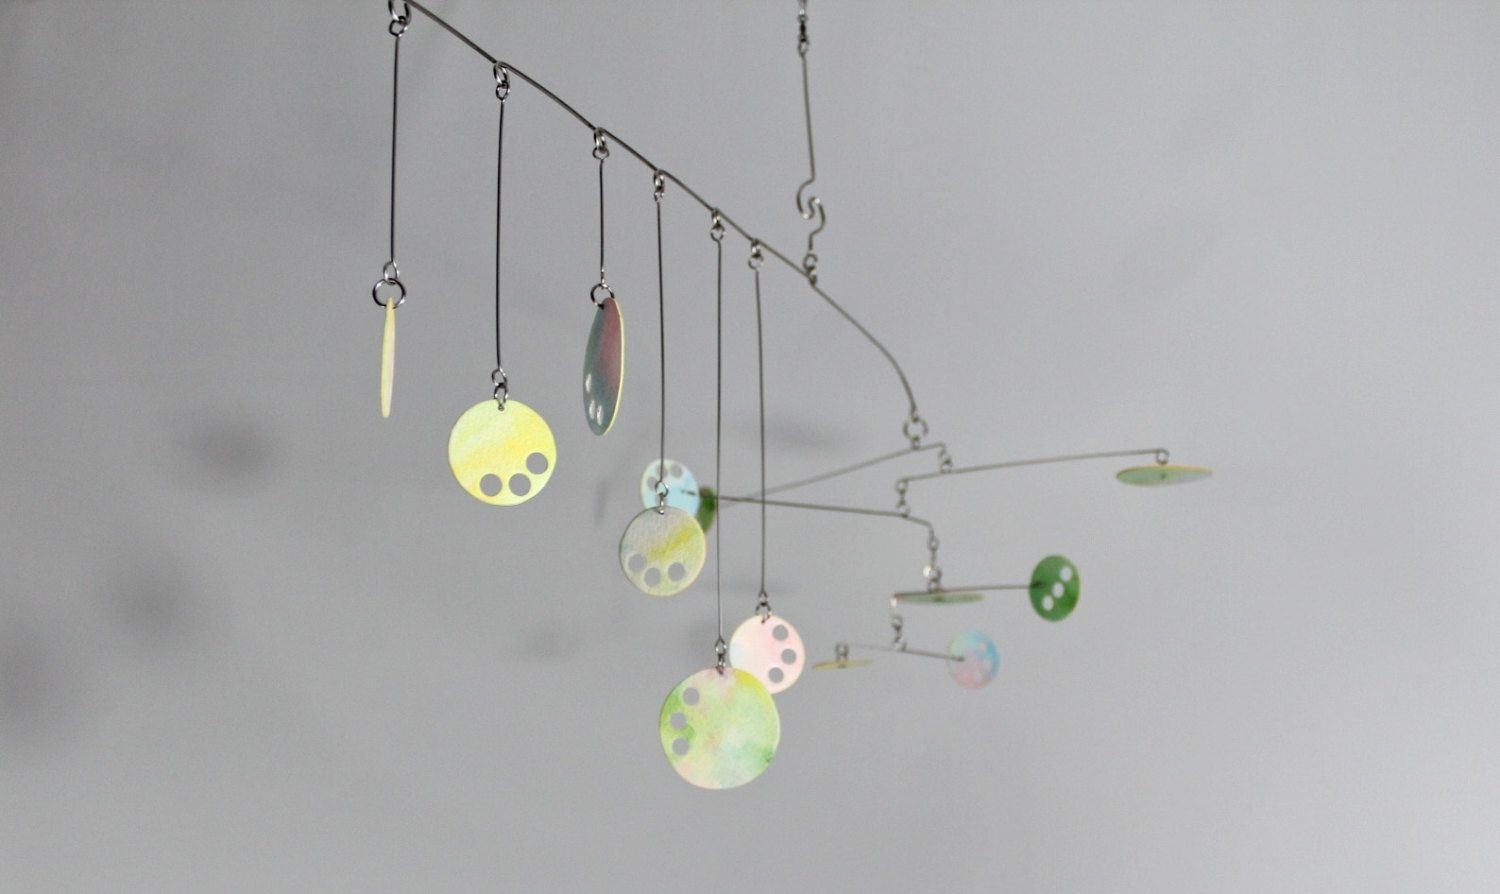 Custom Pastel Mobile Circle Play Kinetic Mobile Sculpture Calder Style By Skysetter